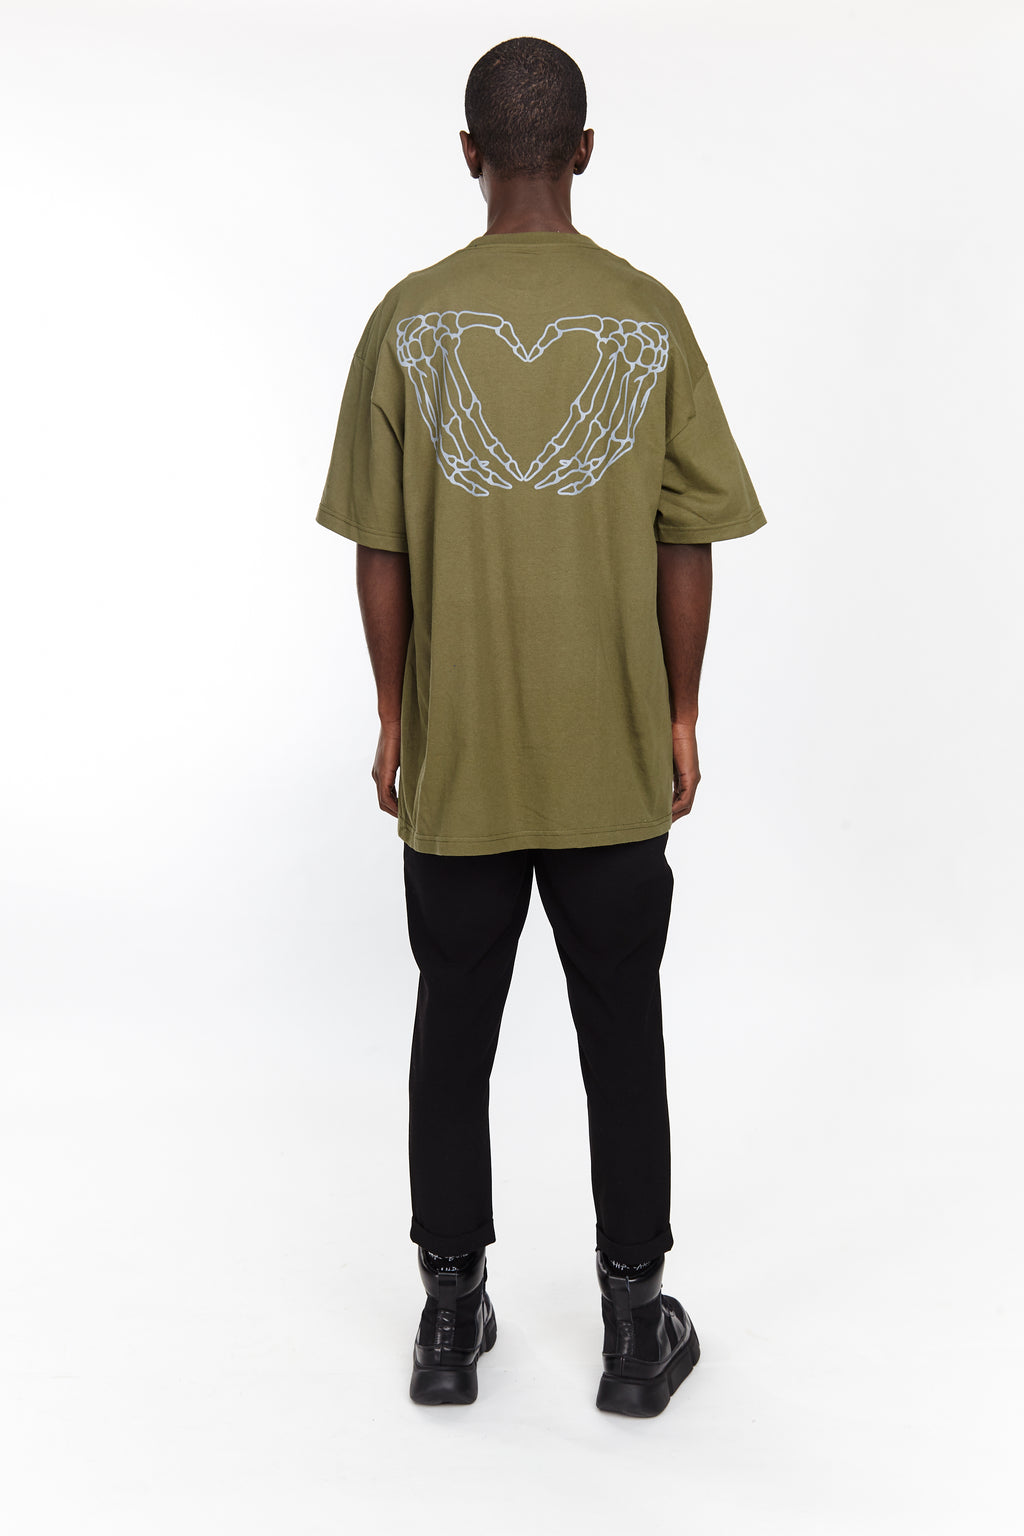 HEARTED HANDS TEE MILITARY GREEN